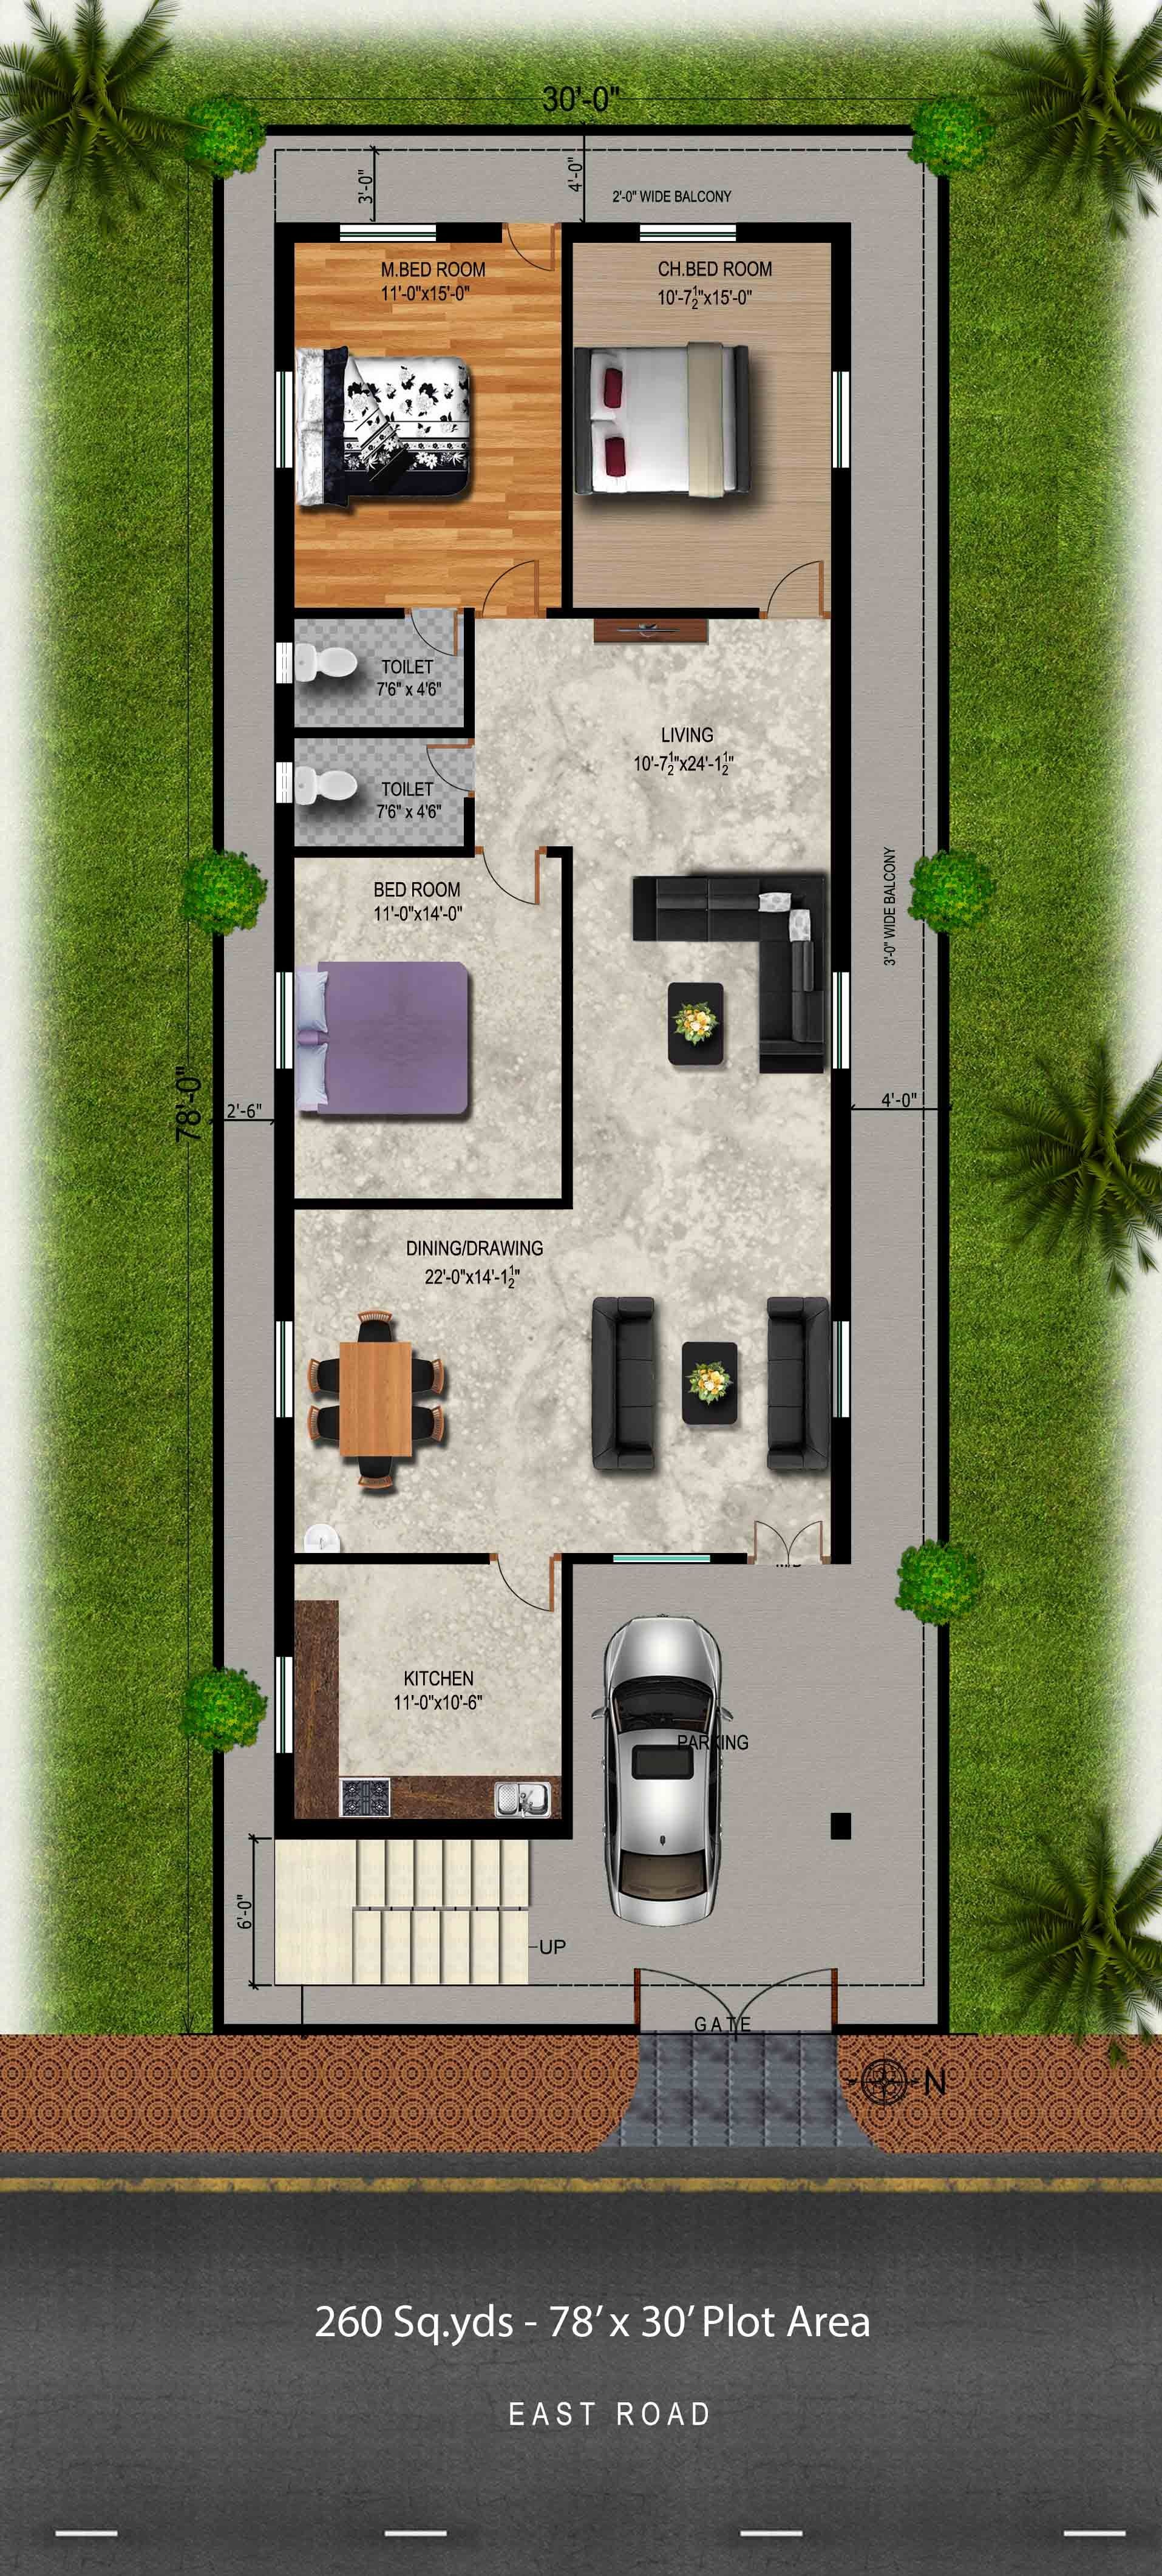 Download Free plans 260 sq yds 30x78 sq ft east face house 3bhk elevation view House Drawings with Plan View Elevation View & Isometric View